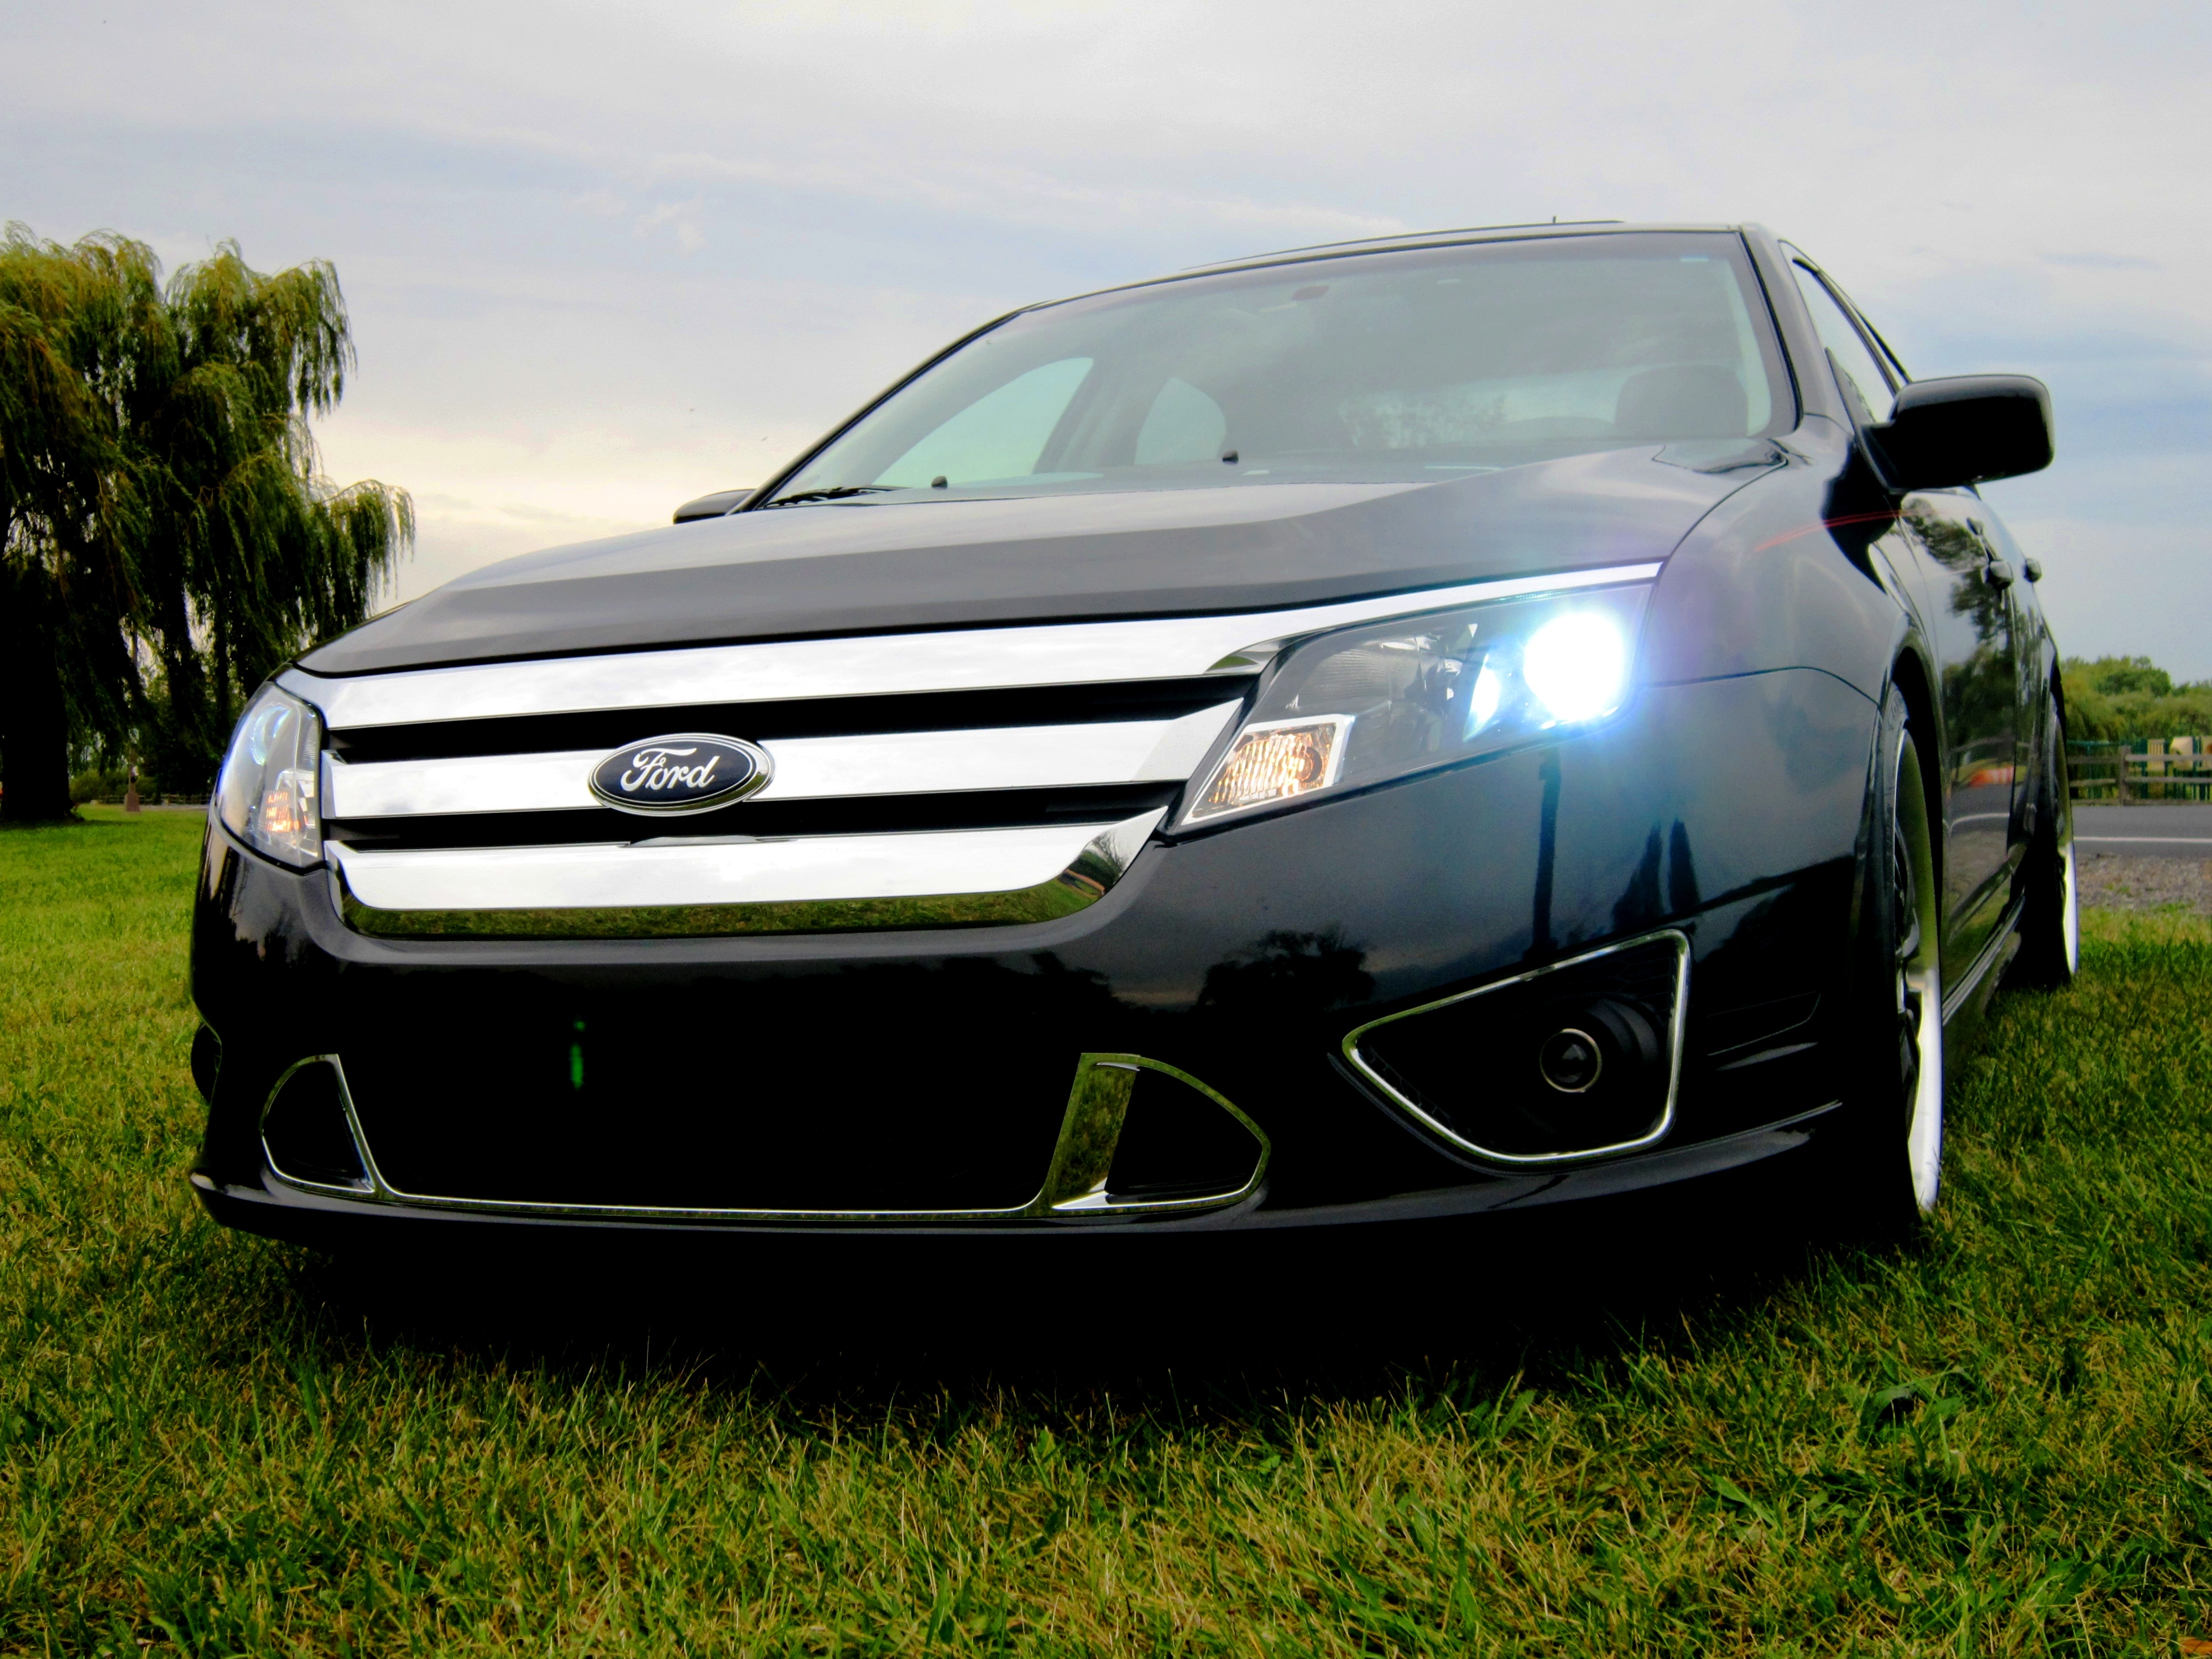 ckenaan's 2010 Ford Fusion